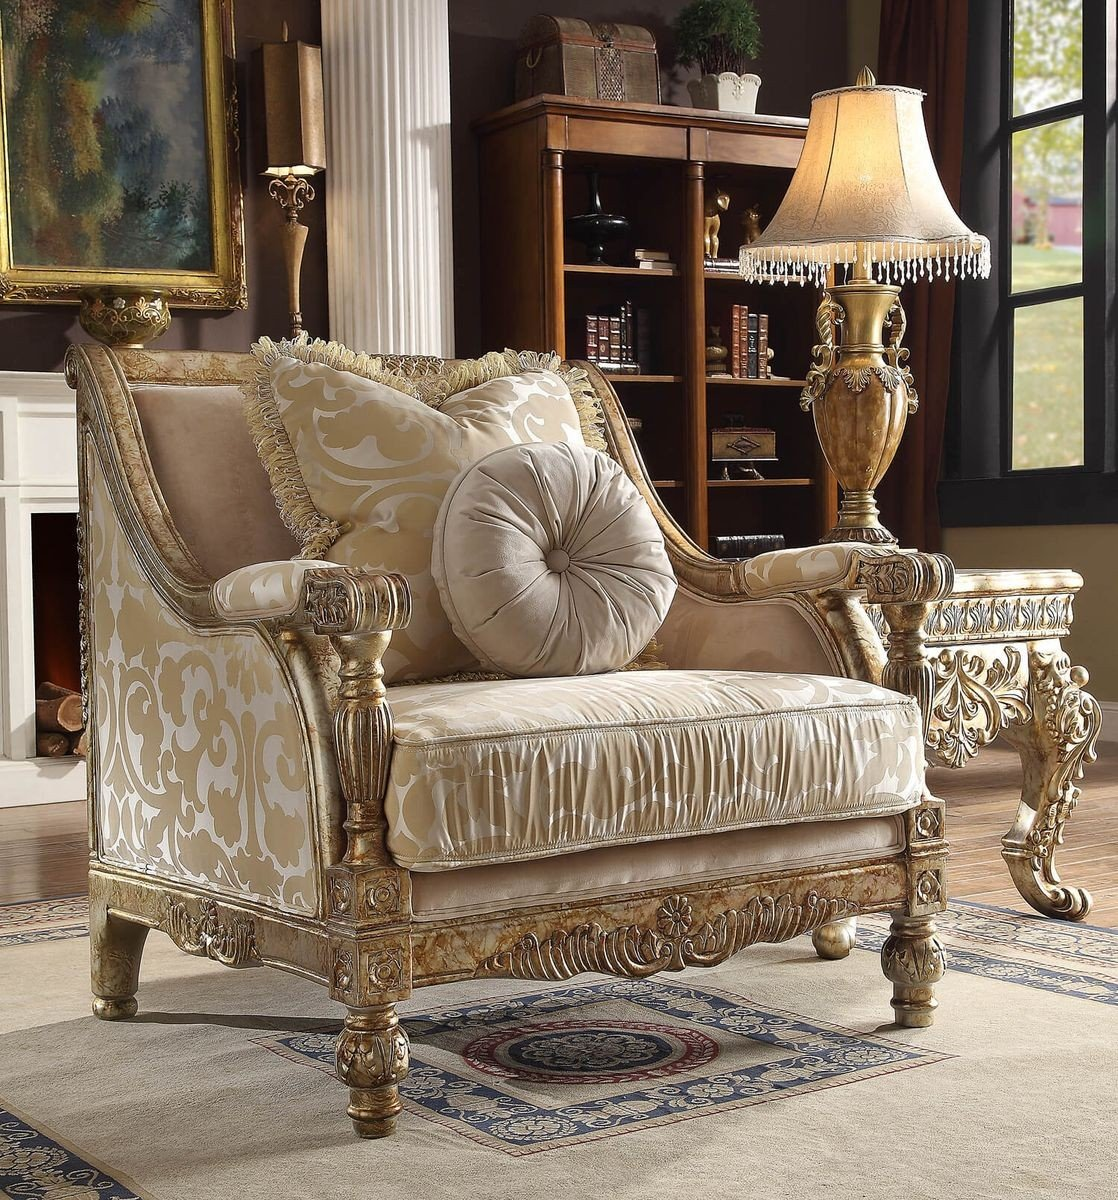 Traditional Antique Hd-205 Gilded Chair in Beige by Homey Design